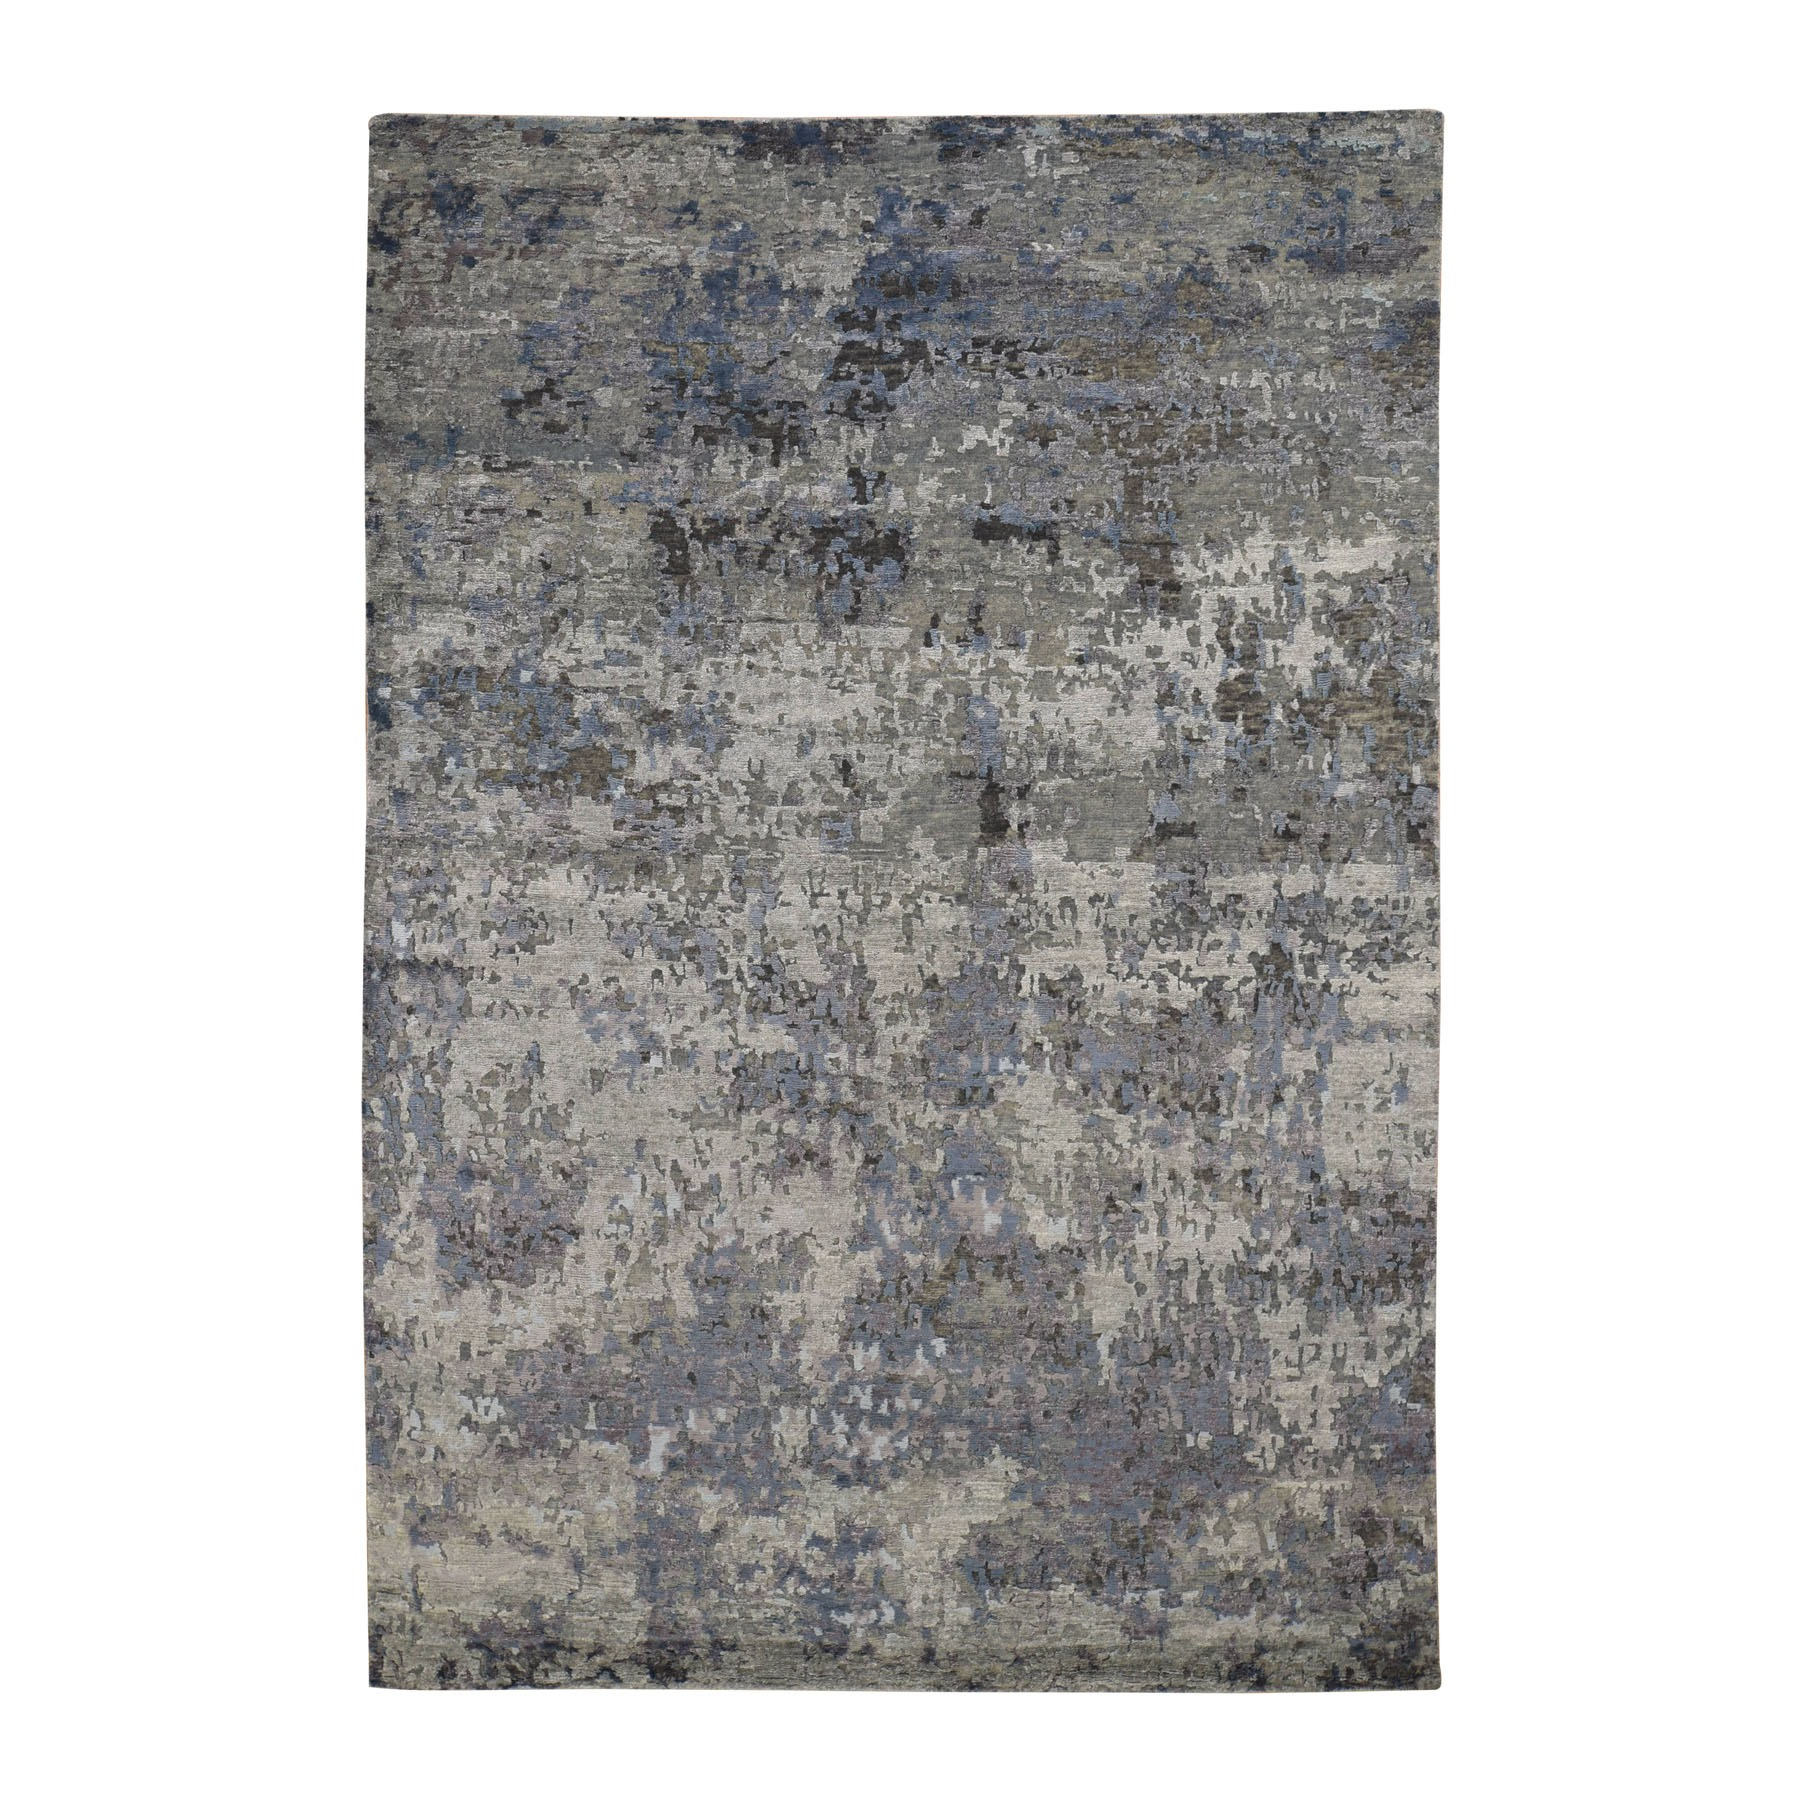 "6'x8'10"" Hi-Low Pile Abstract Design Wool And Silk Hand Knotted Oriental Rug"